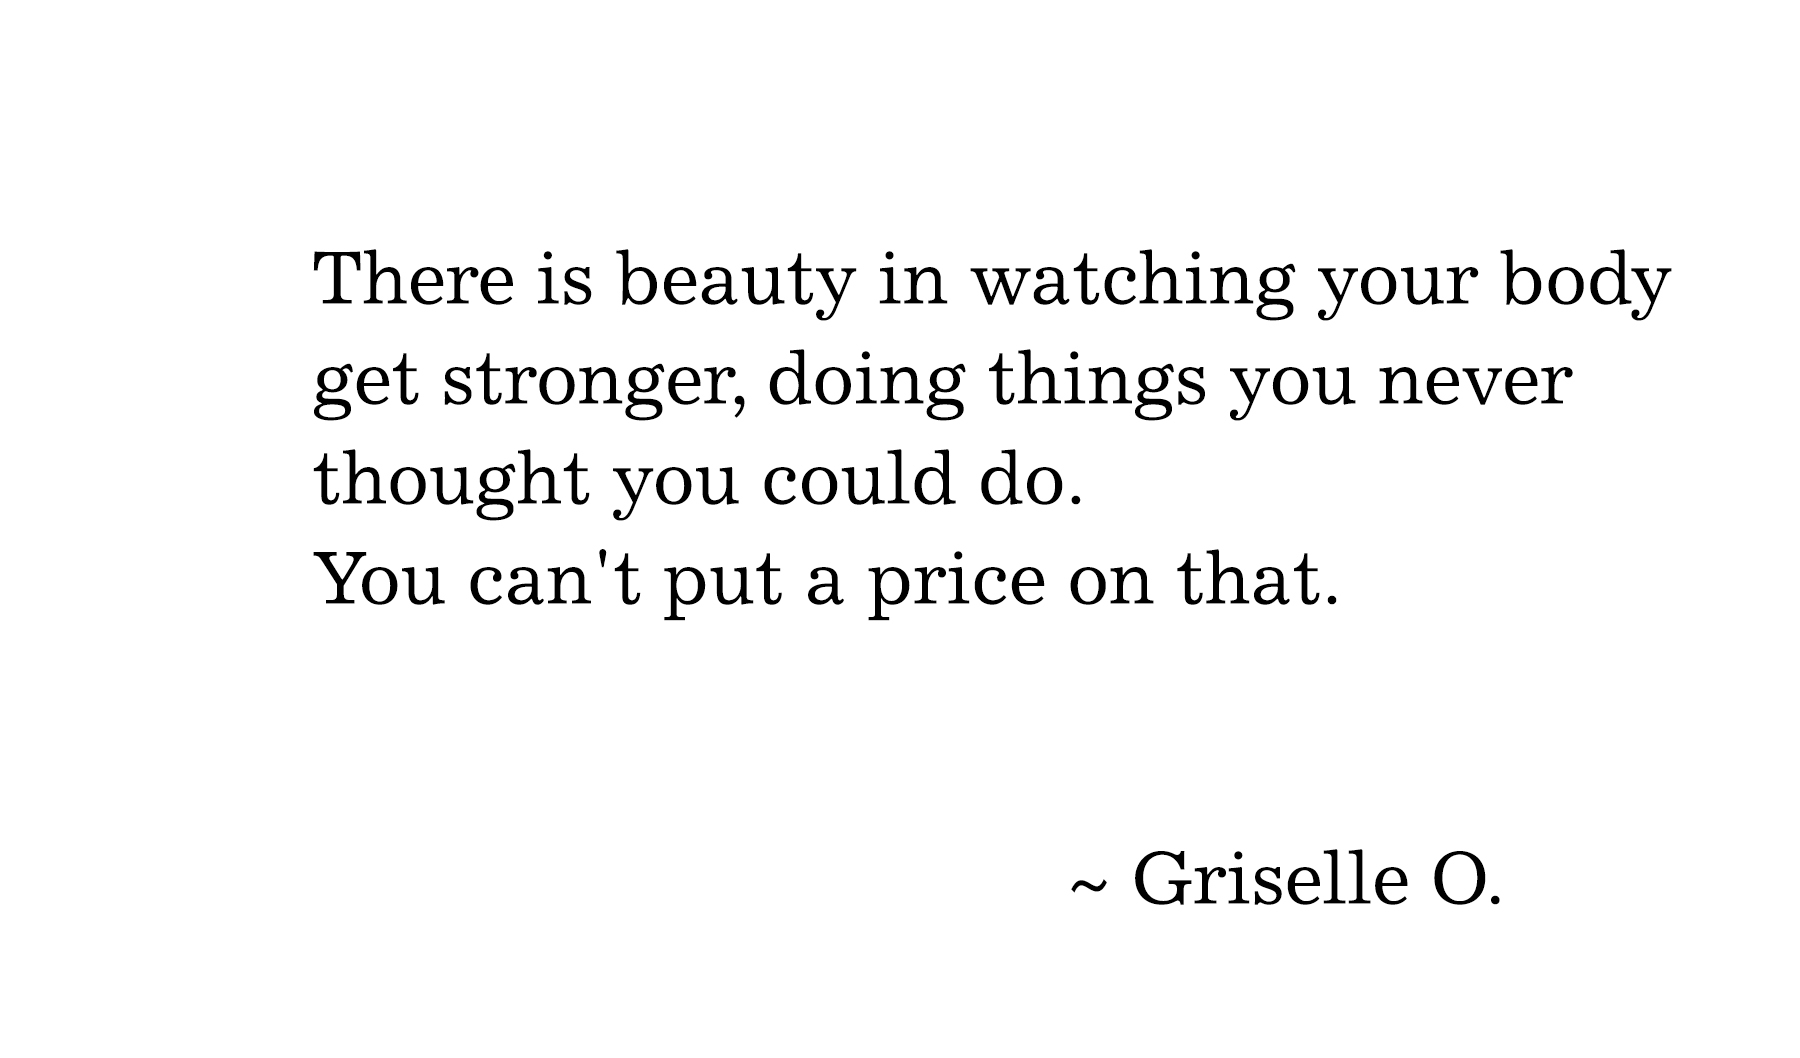 Griselle O-quote.jpg